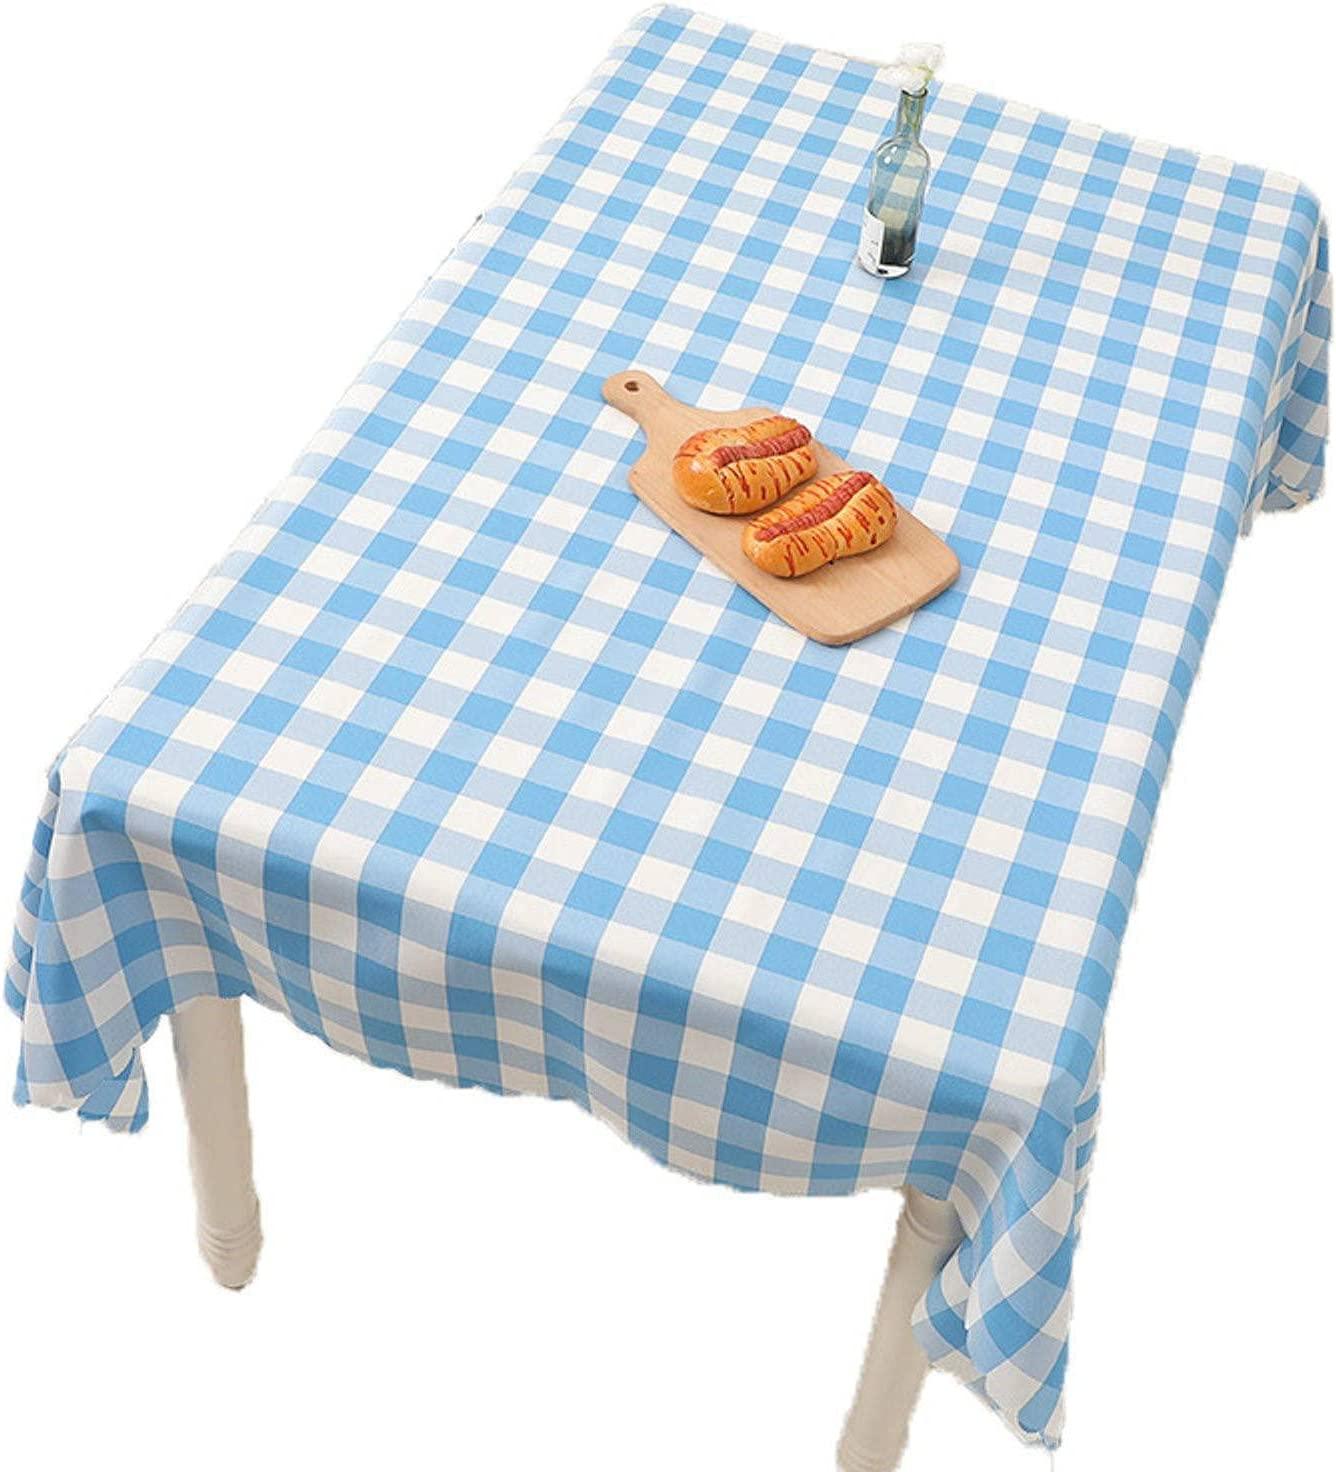 Stylish Popular product Classic Square Rectangular Tablecloth Table for Di Cover Kitchen